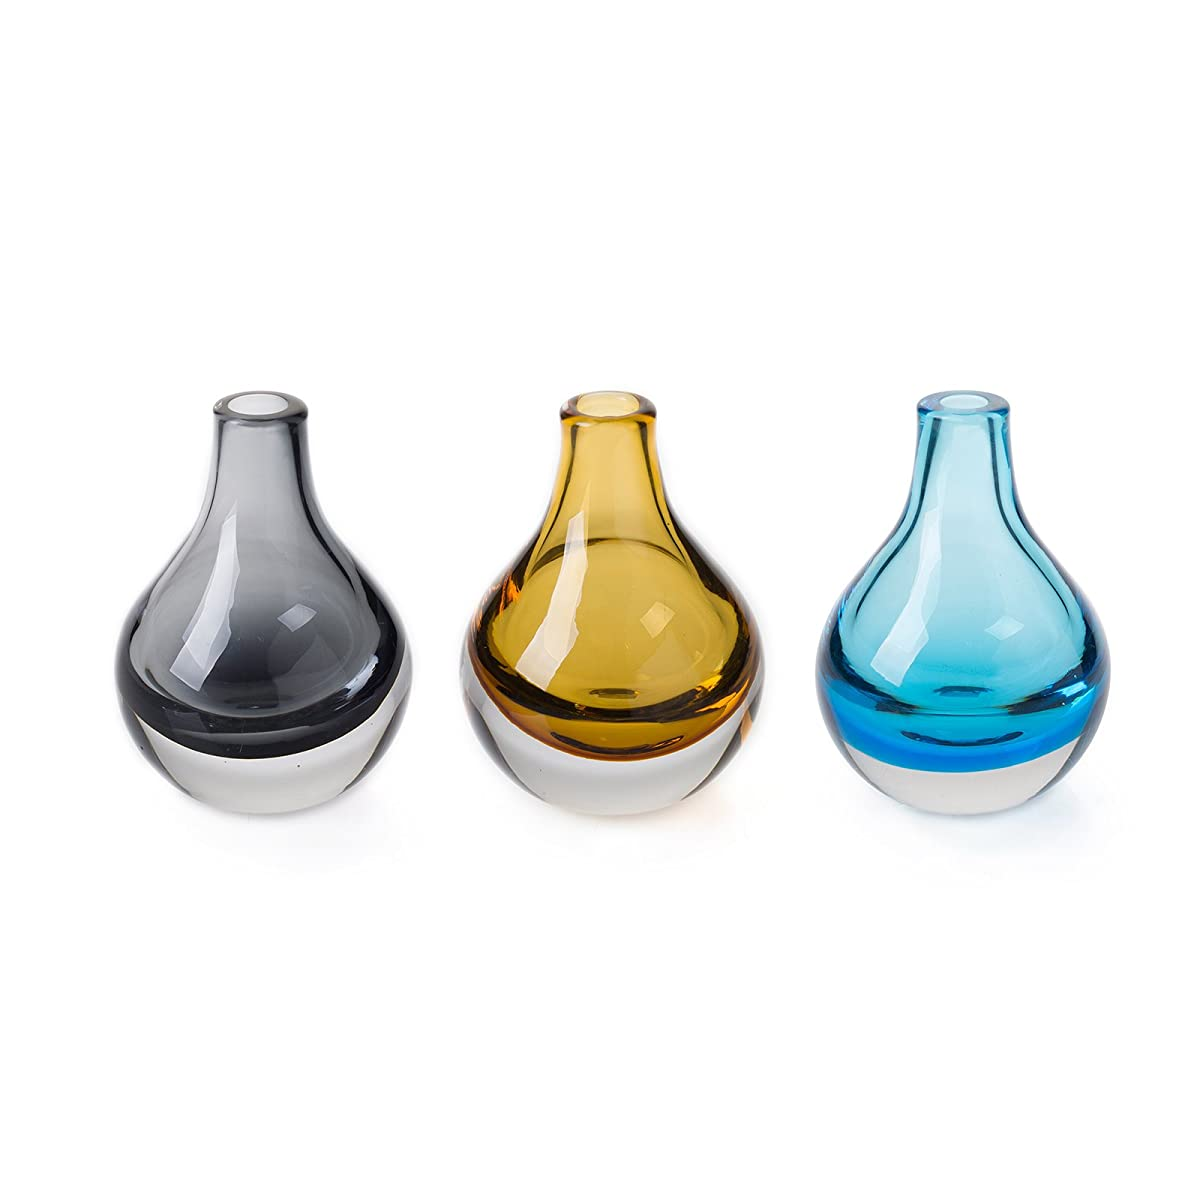 CASAMOTION Home Decor Accent Vase Hand Blown Art Solid Color Glass Bud Vase, Blue, Amber, Smoke